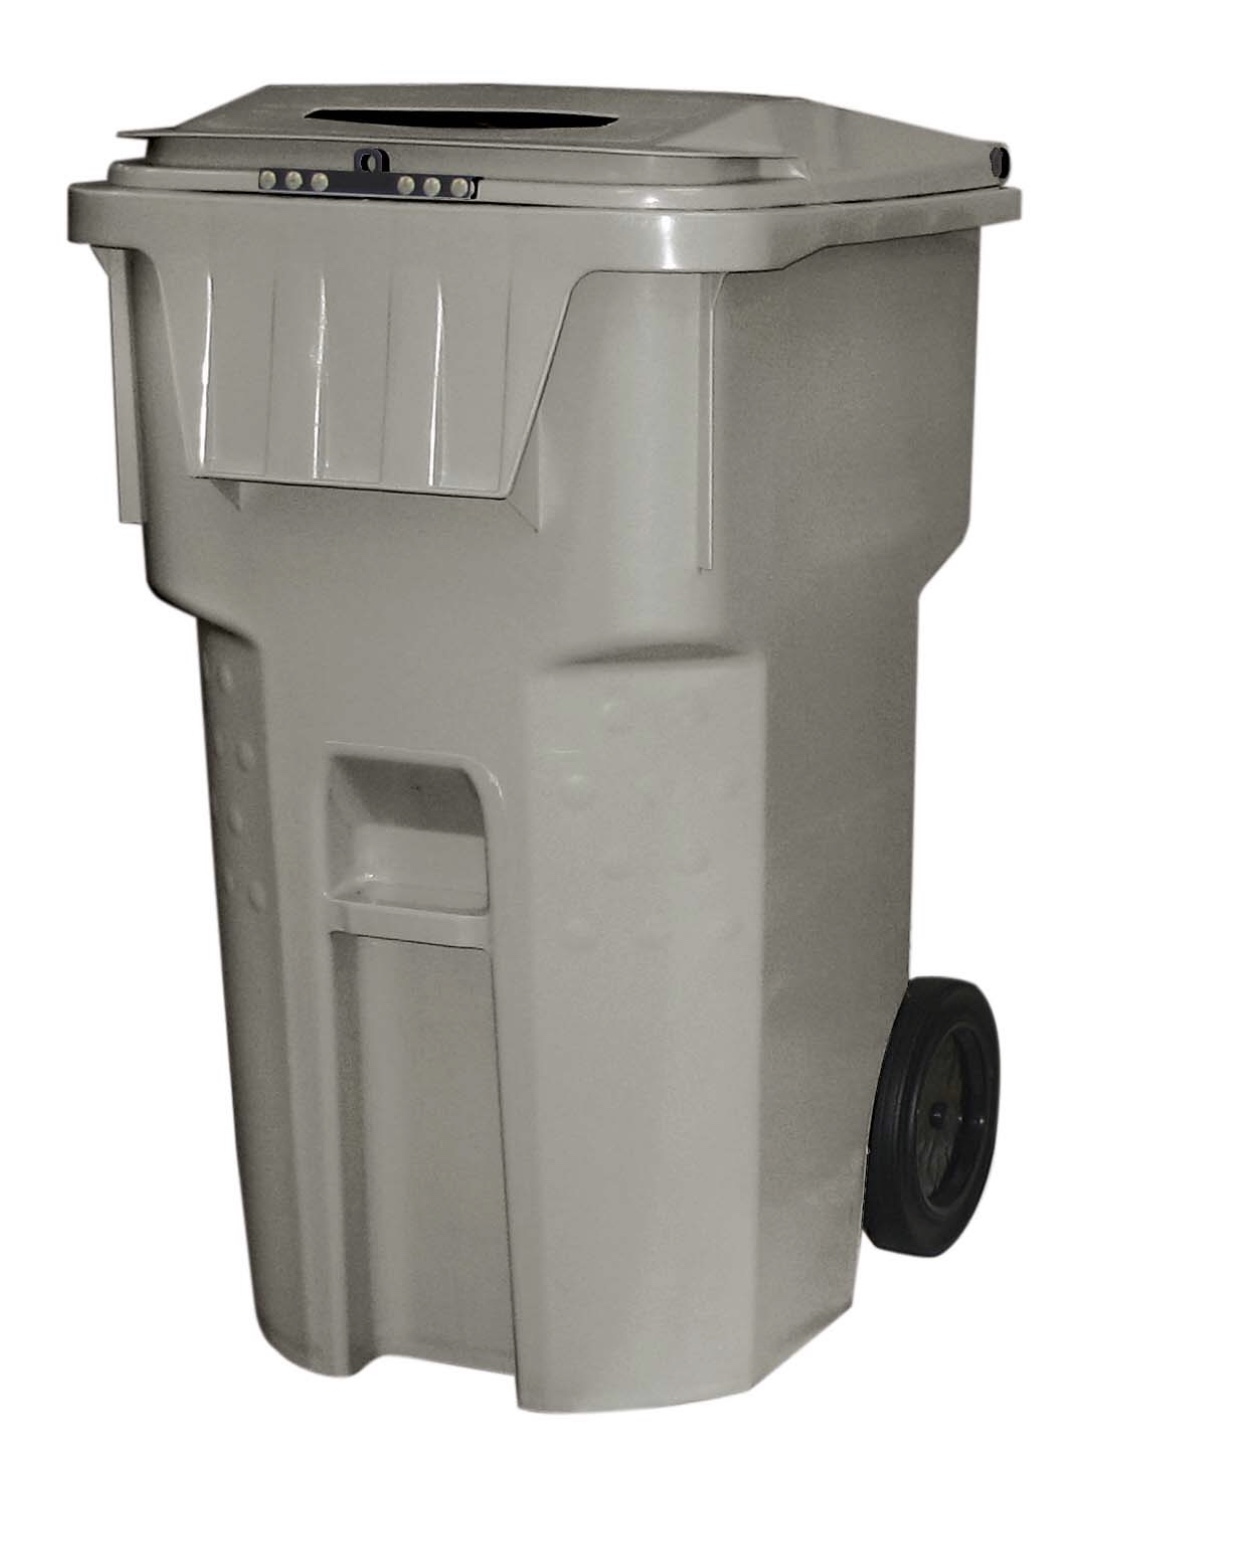 95 GALLON BIN - •Dimensions (in): 34.0